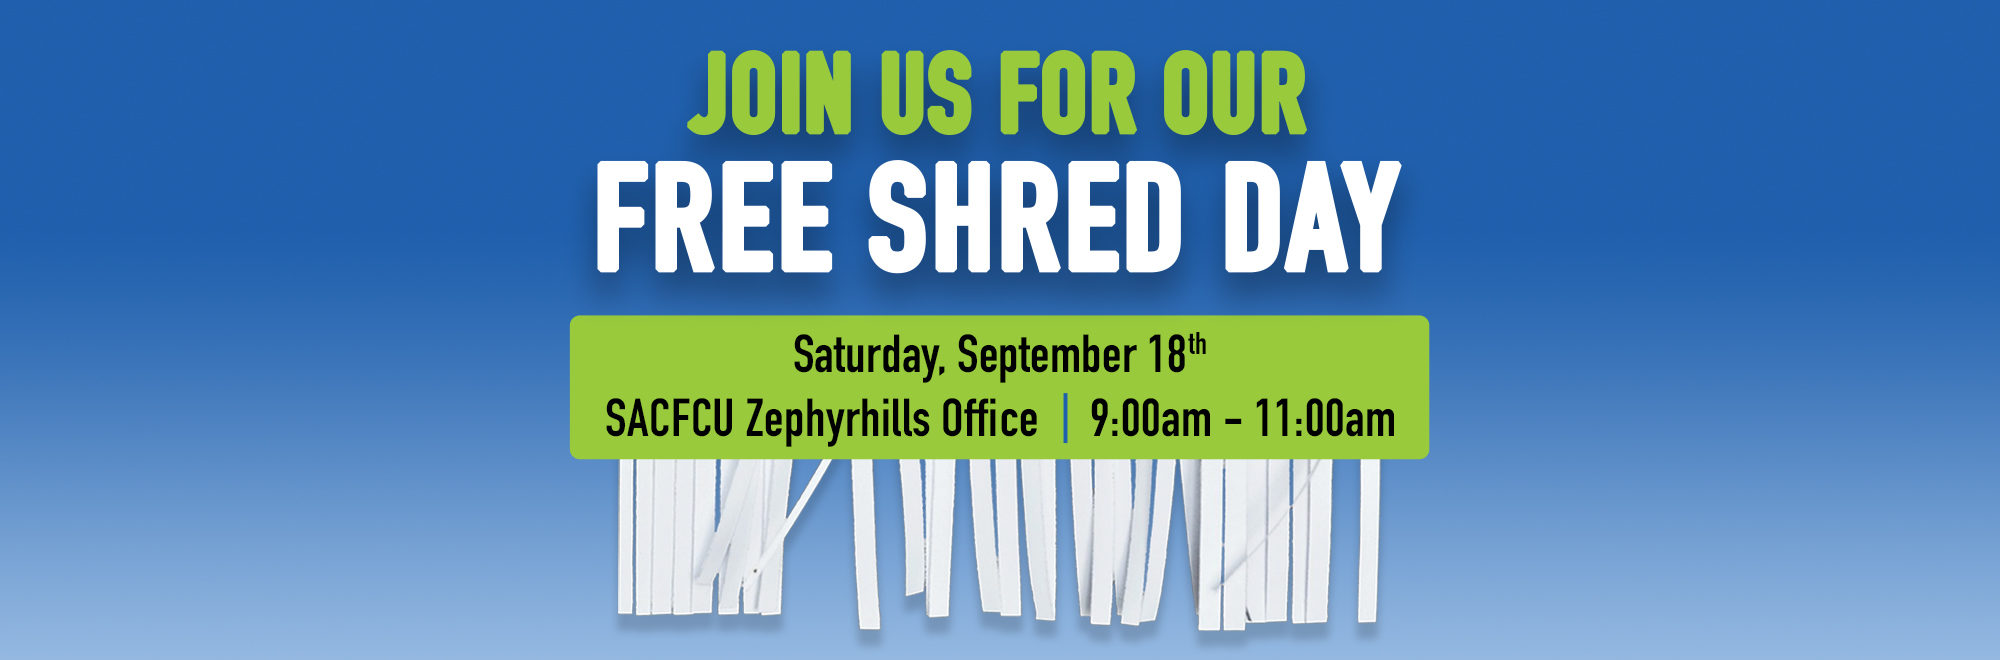 Join us for our free shred day on Saturday, September 18th from 9 to 11am at the Zephyrhils office